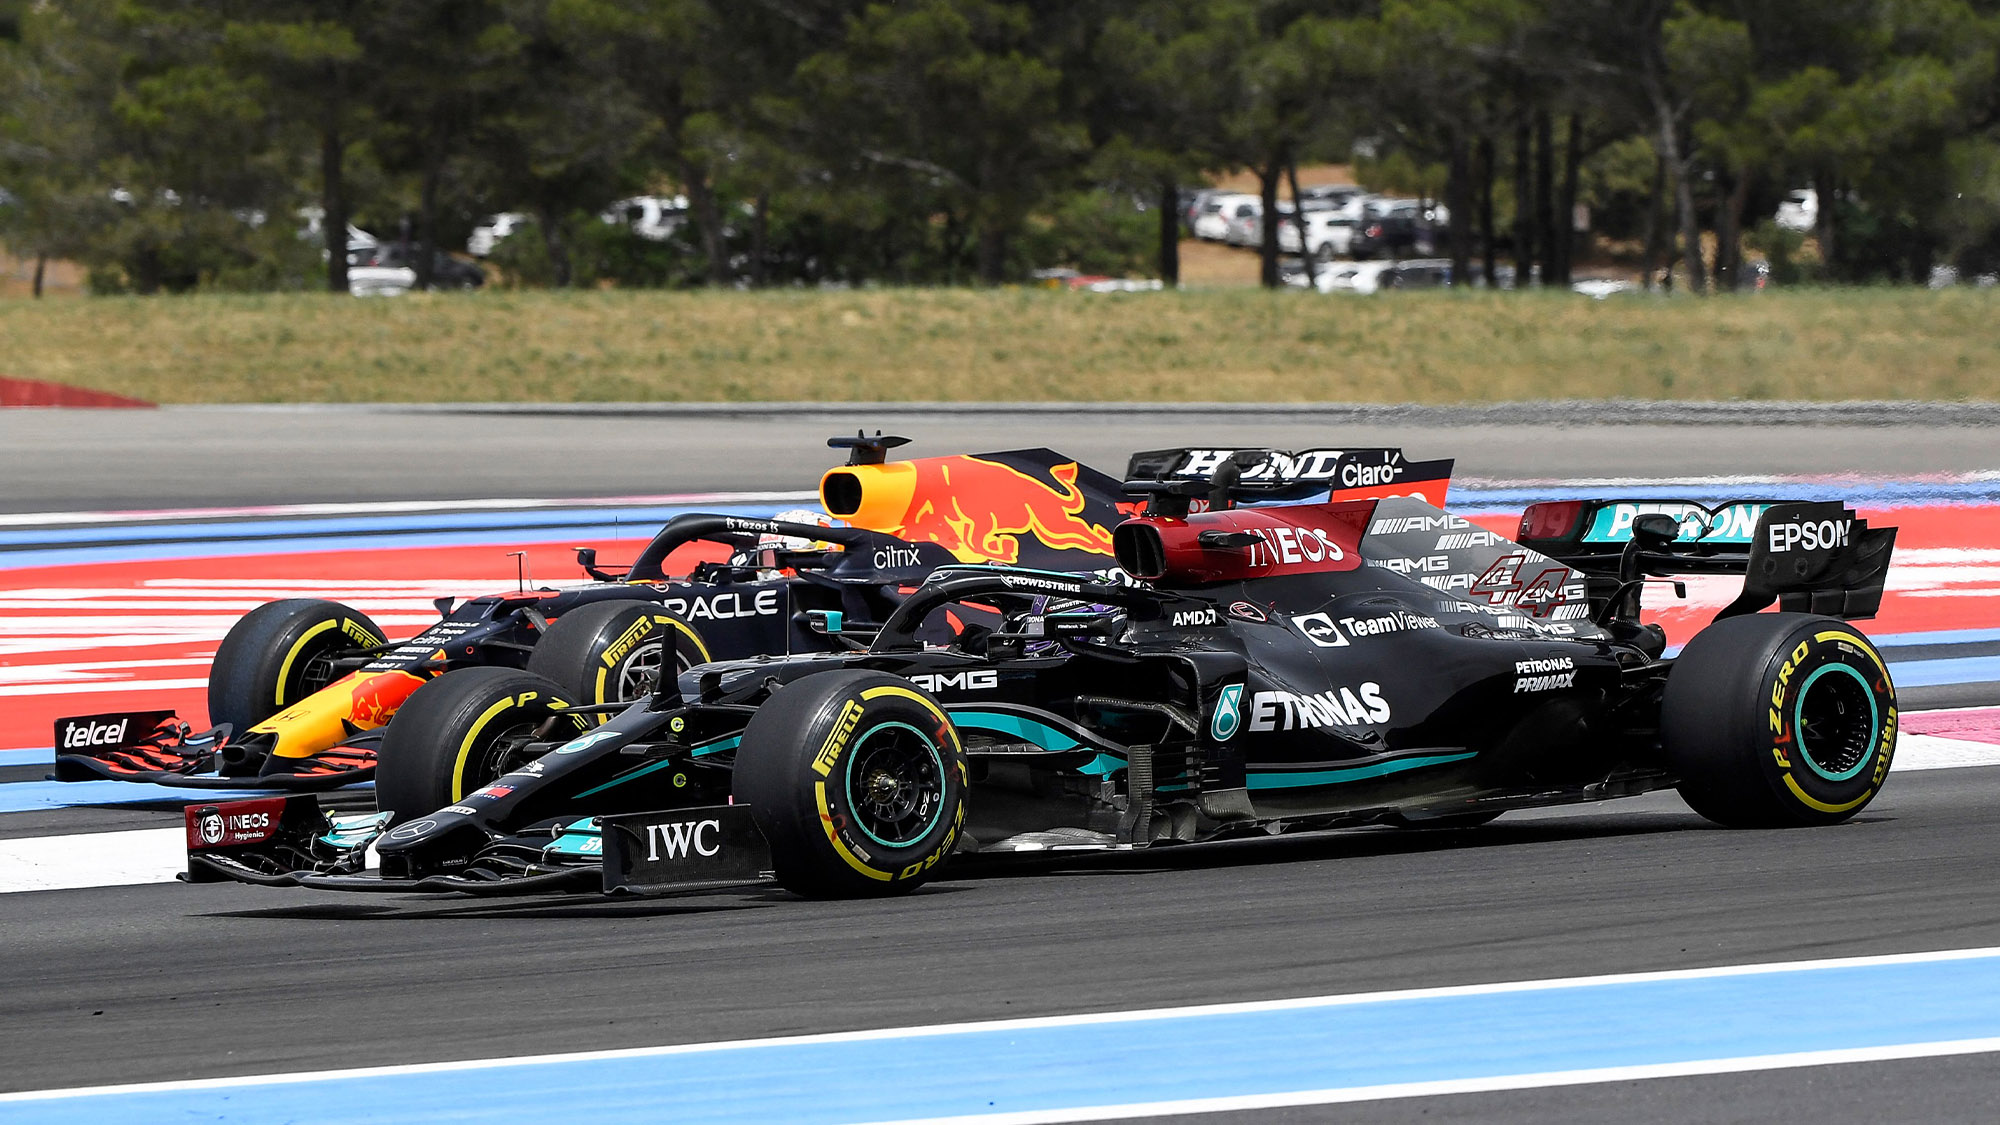 Lewis Hamilton passes Max Verstappen at the start of the 2021 French Grand Prix